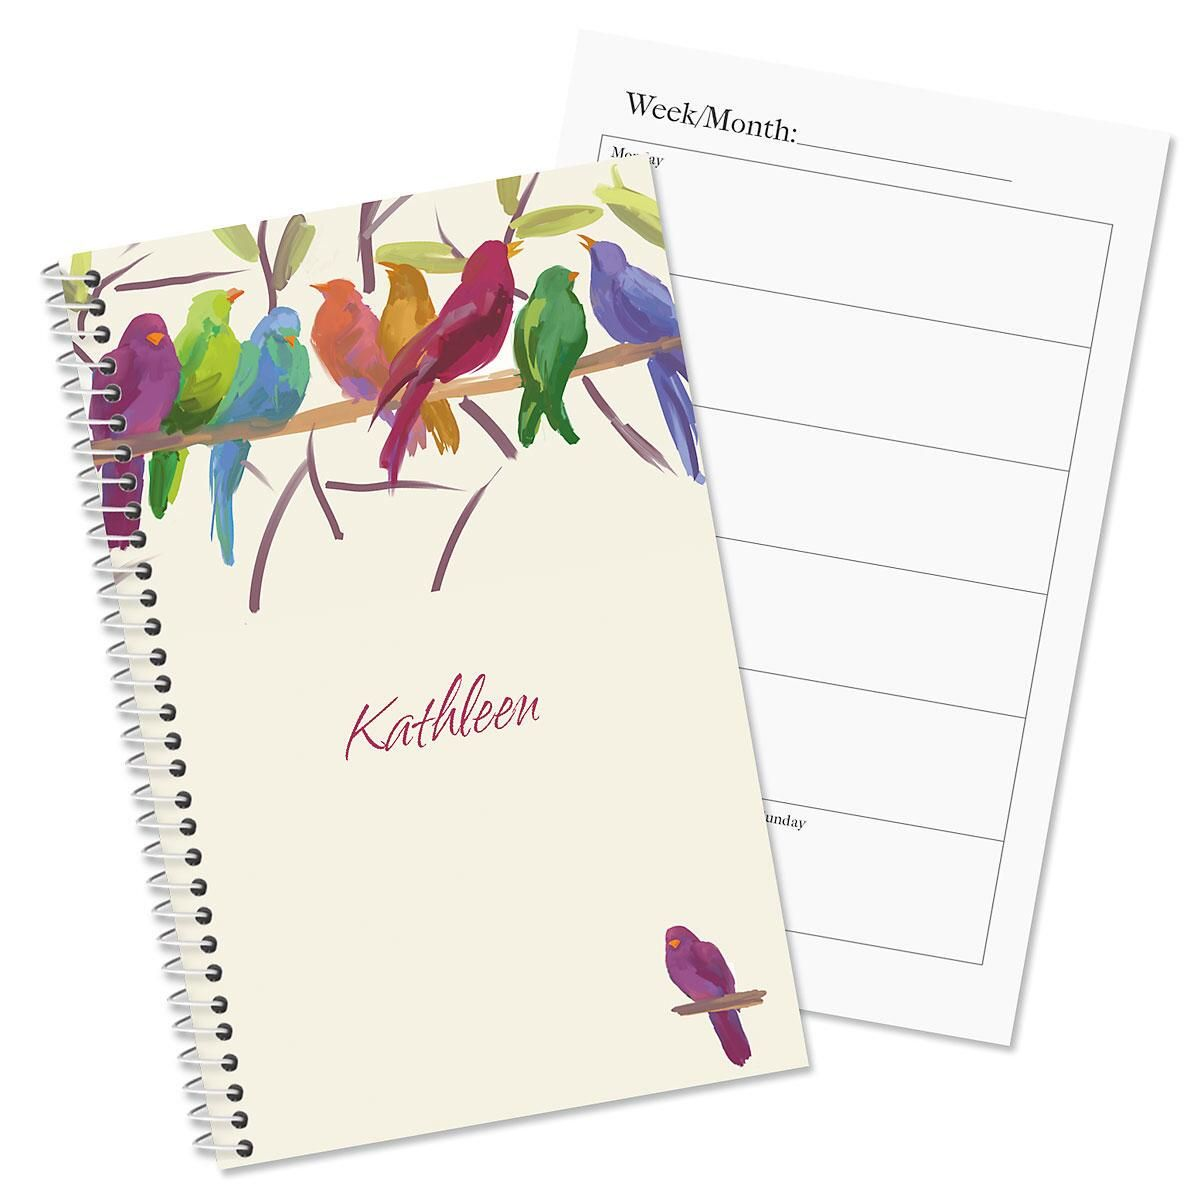 Flocked Together Personalized Weekly Planner